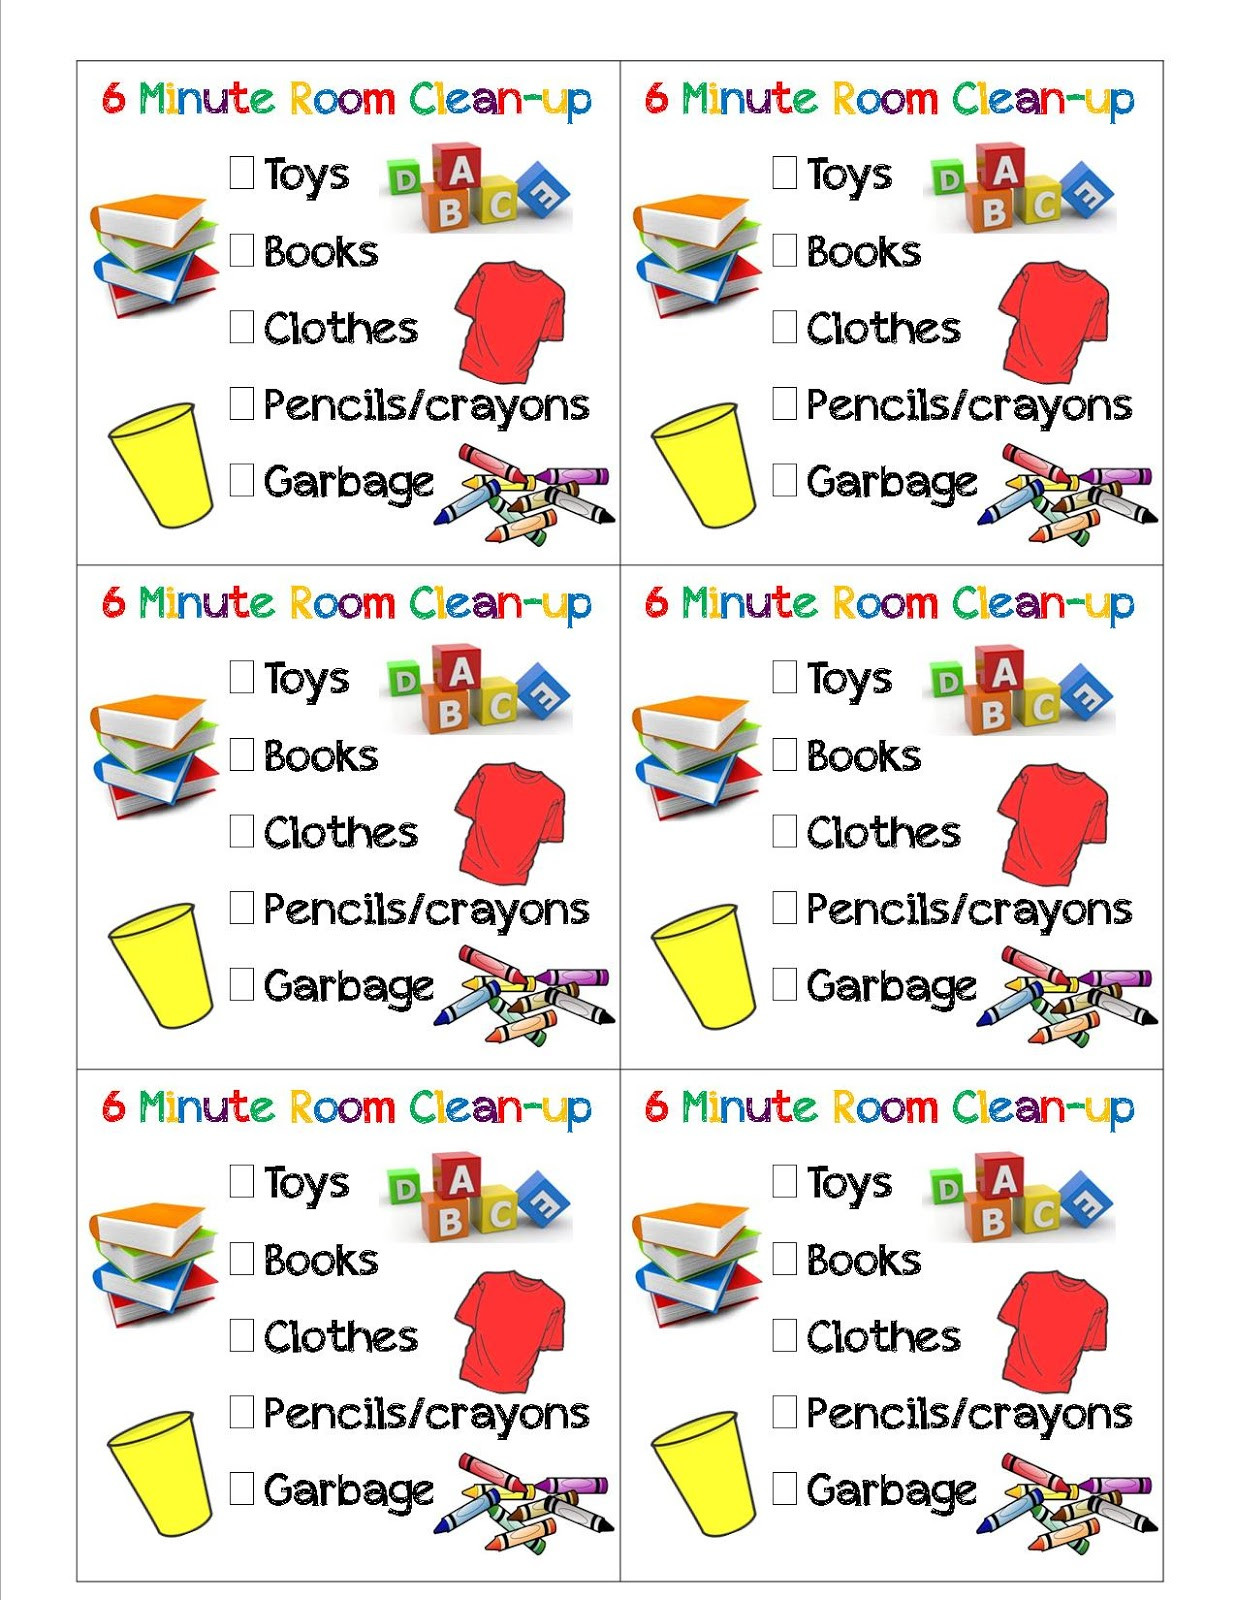 Clean clipart clean bedroom. Cleaning checklist for kids